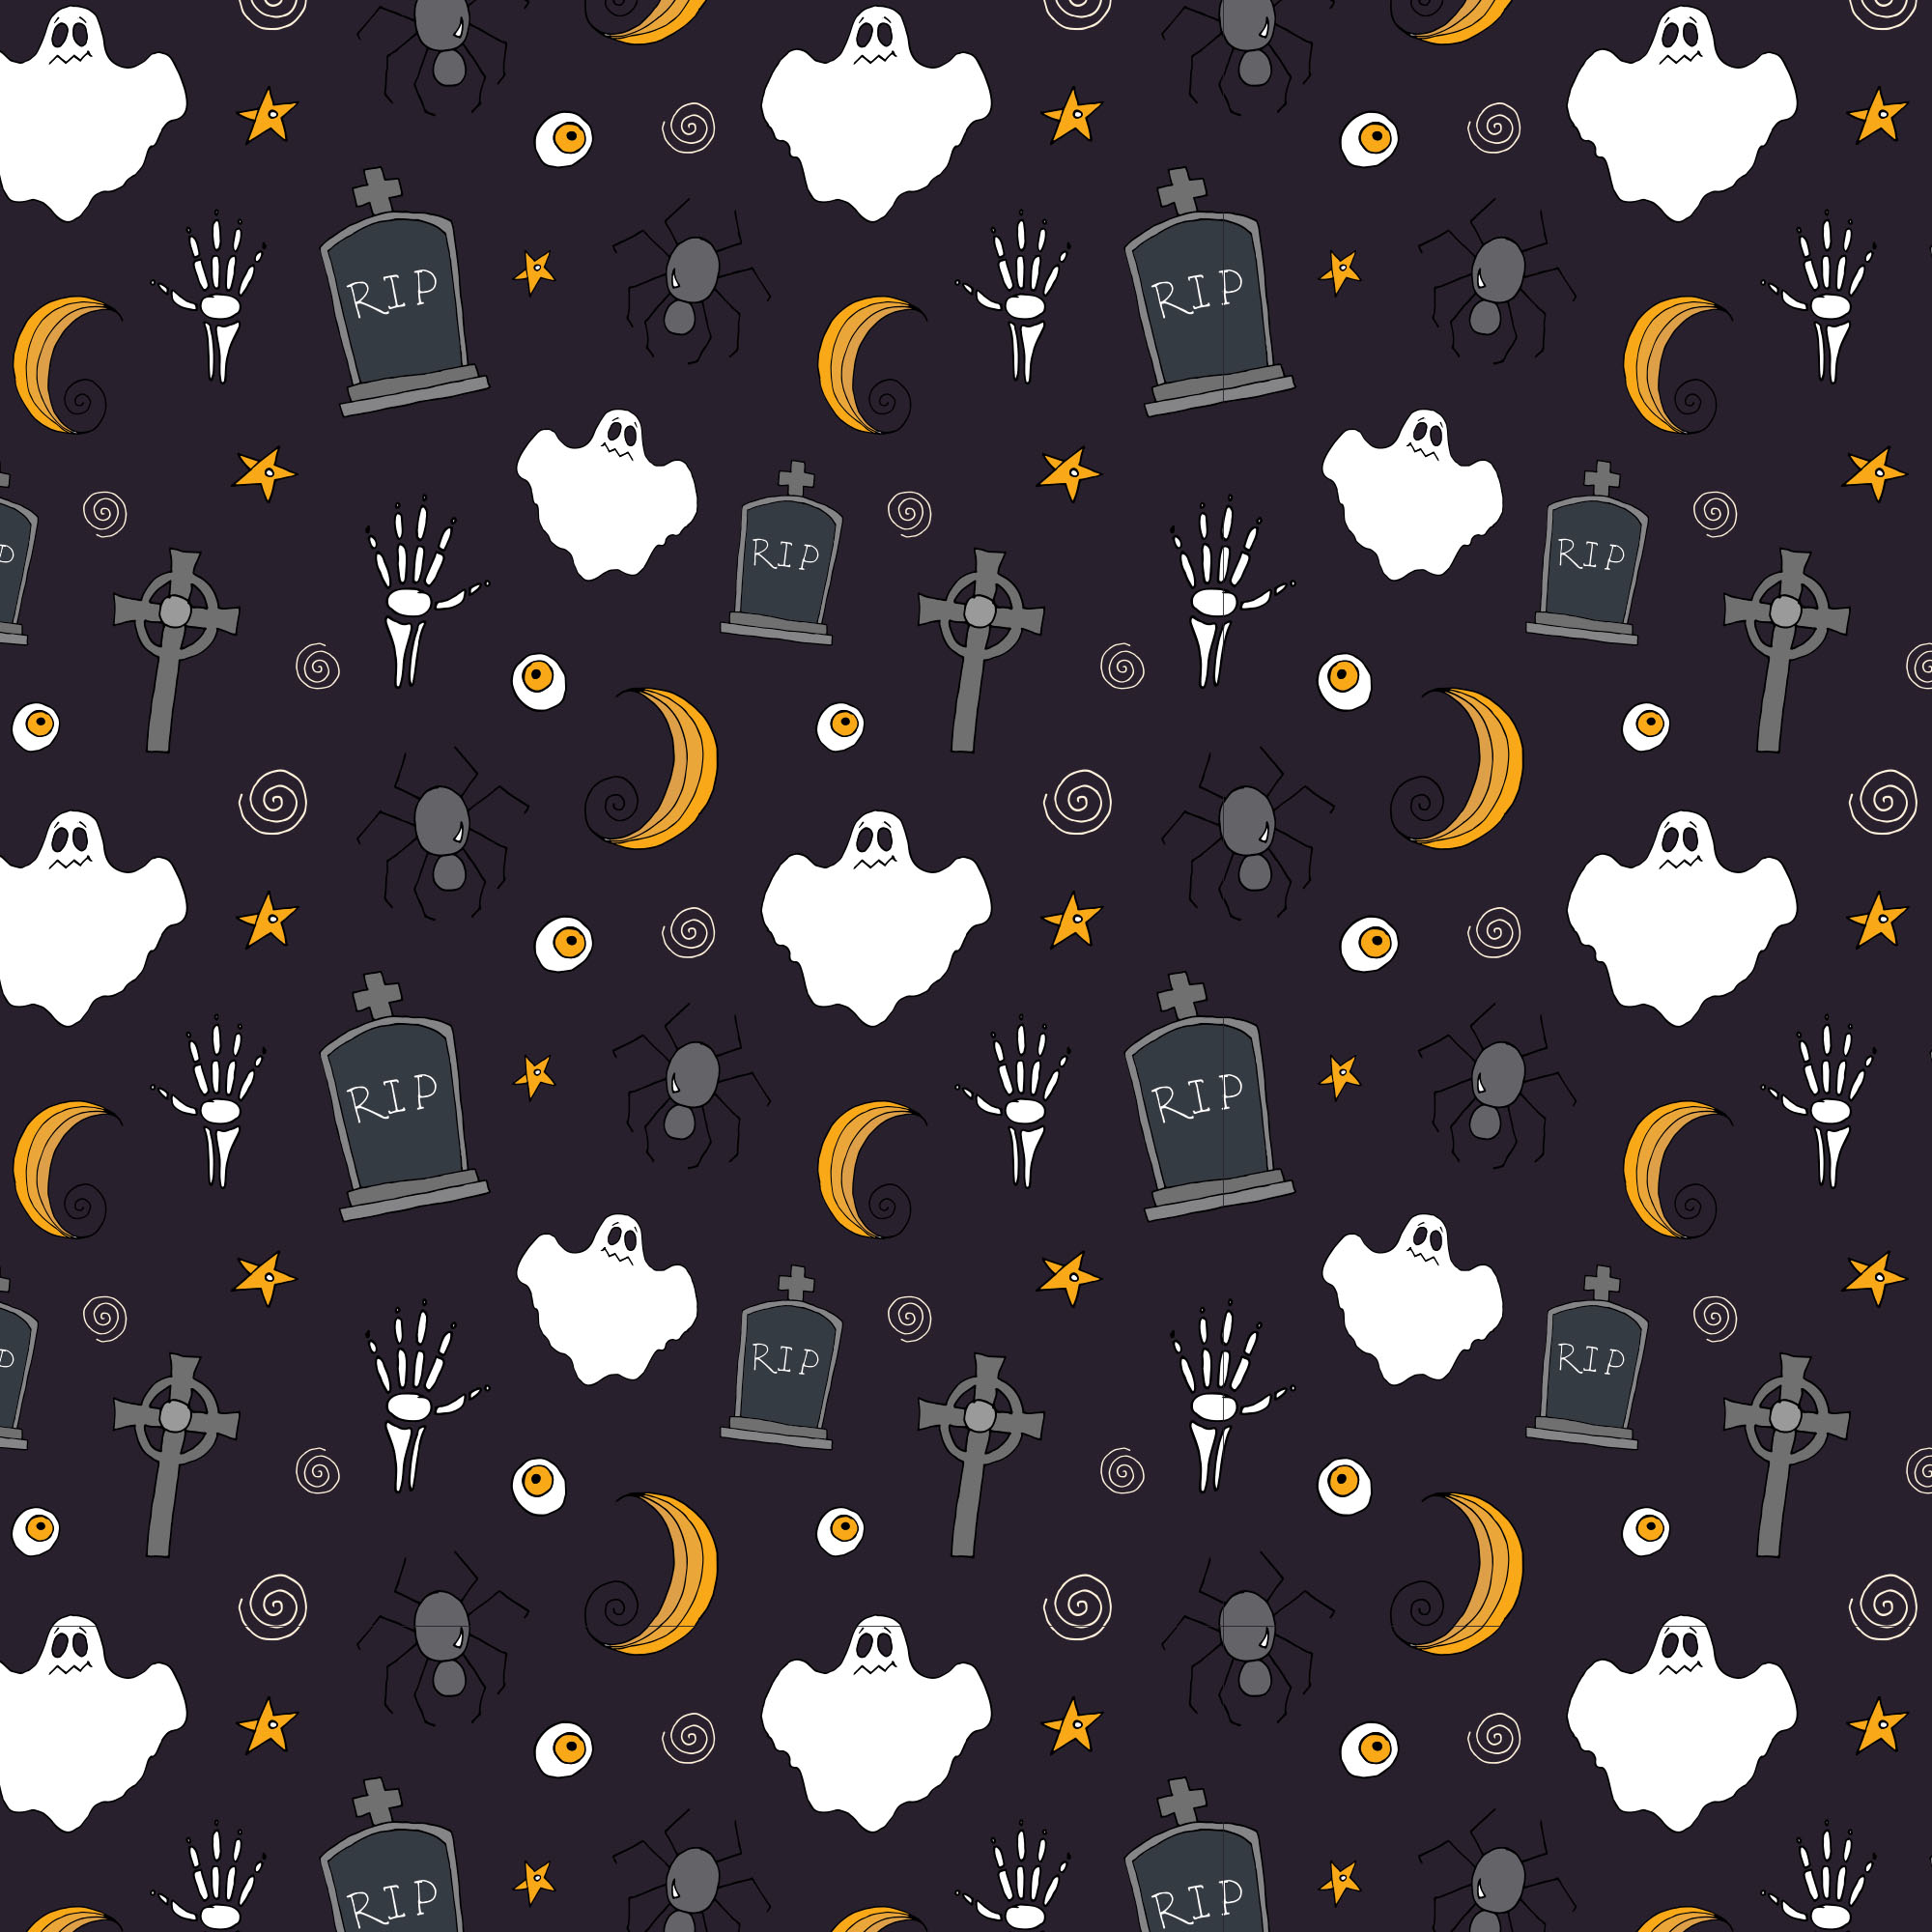 Halloween Vector Elements  Patterns  Part II